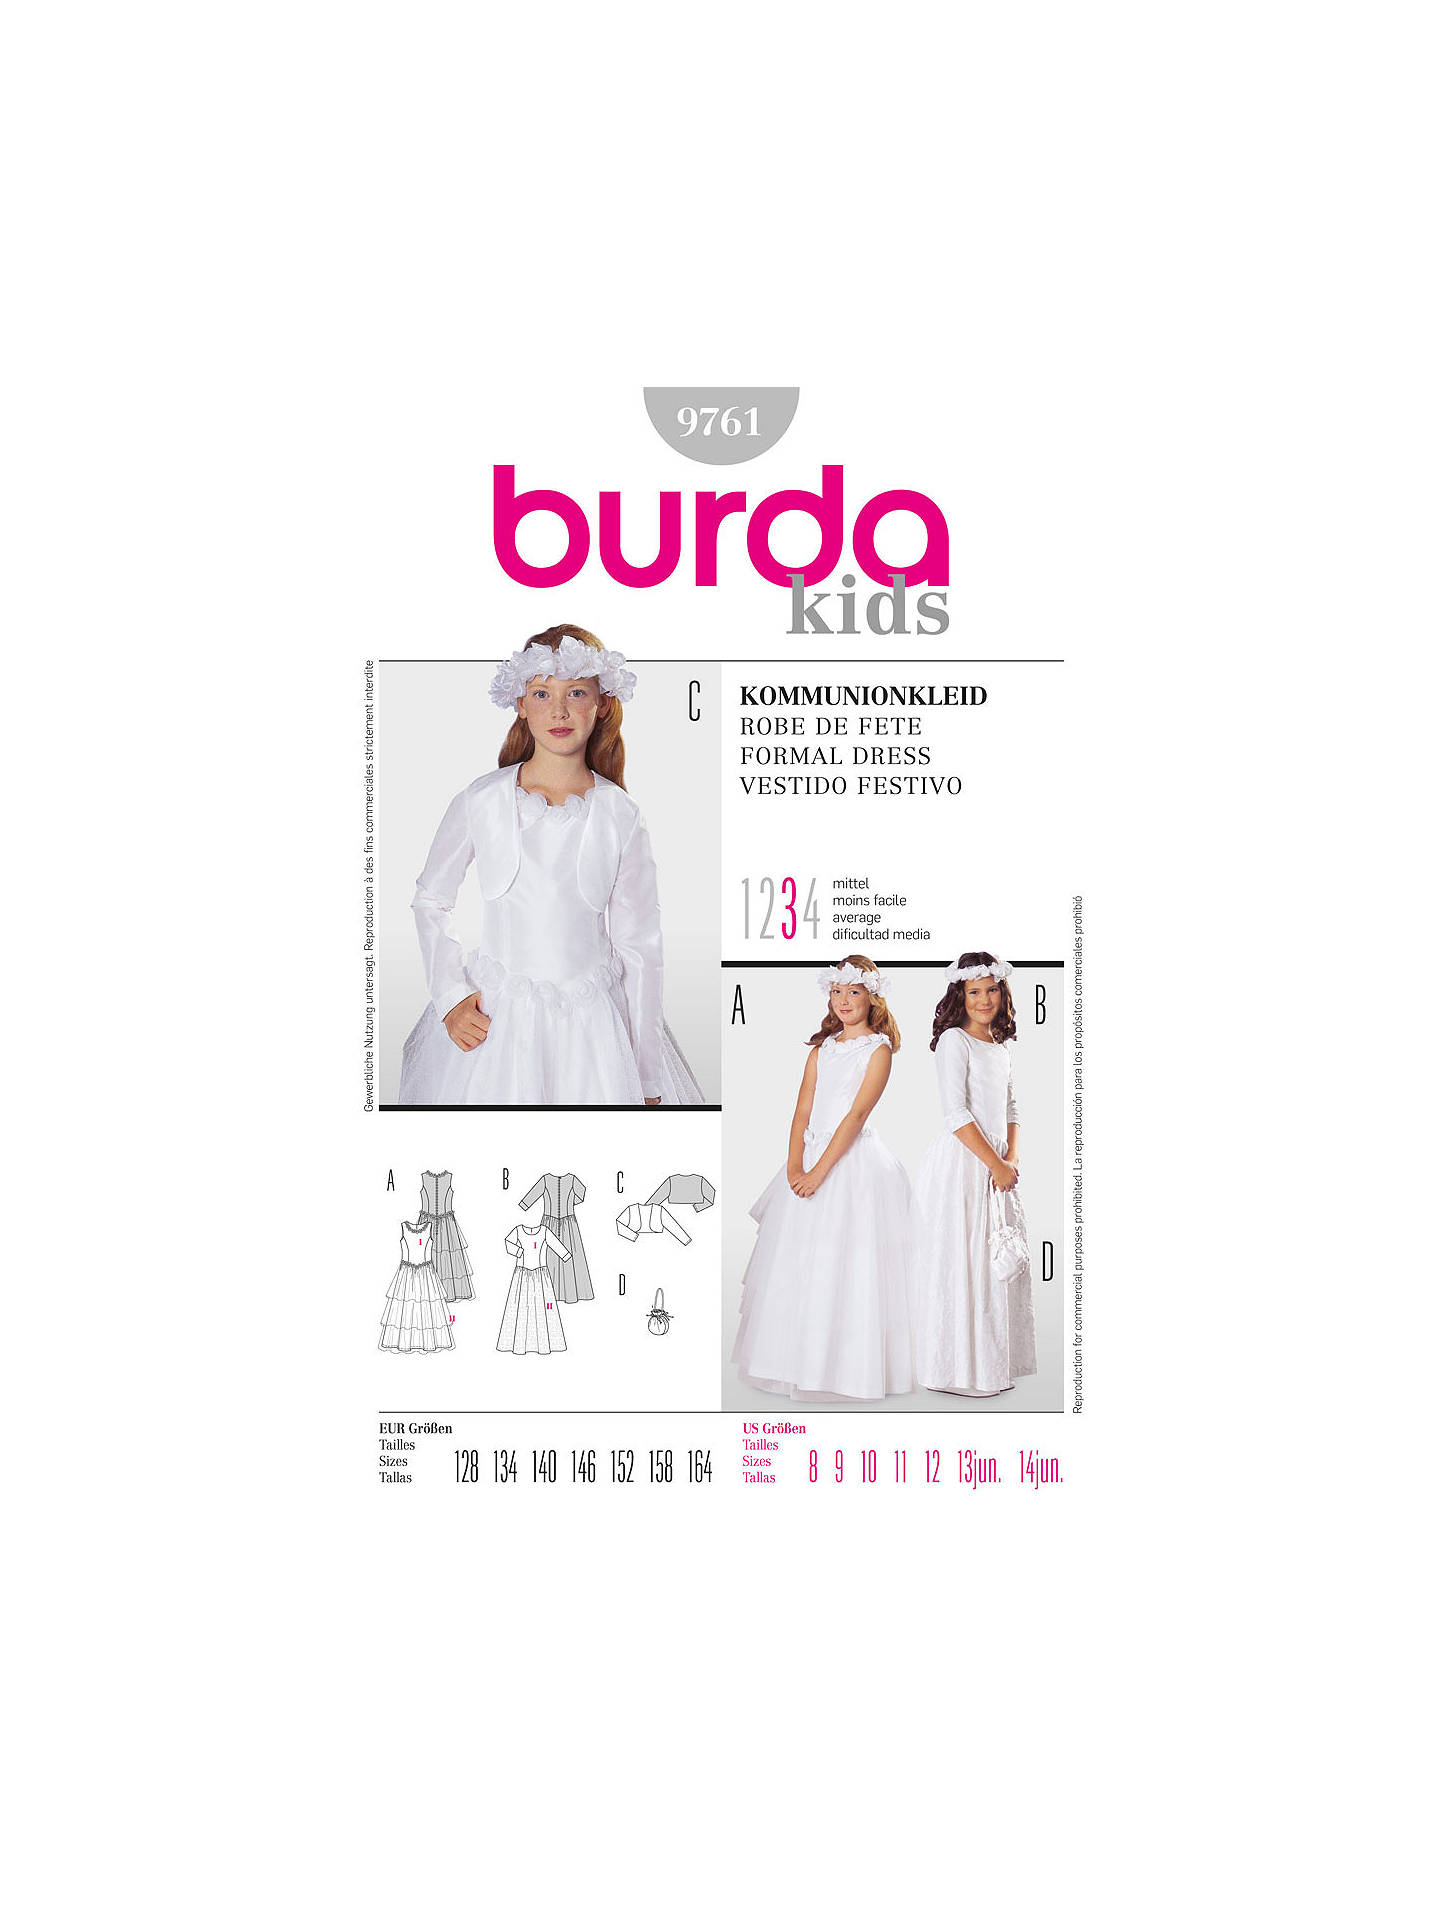 Burda Children S Formal Dress Sewing Pattern 9761 At John Lewis Partners